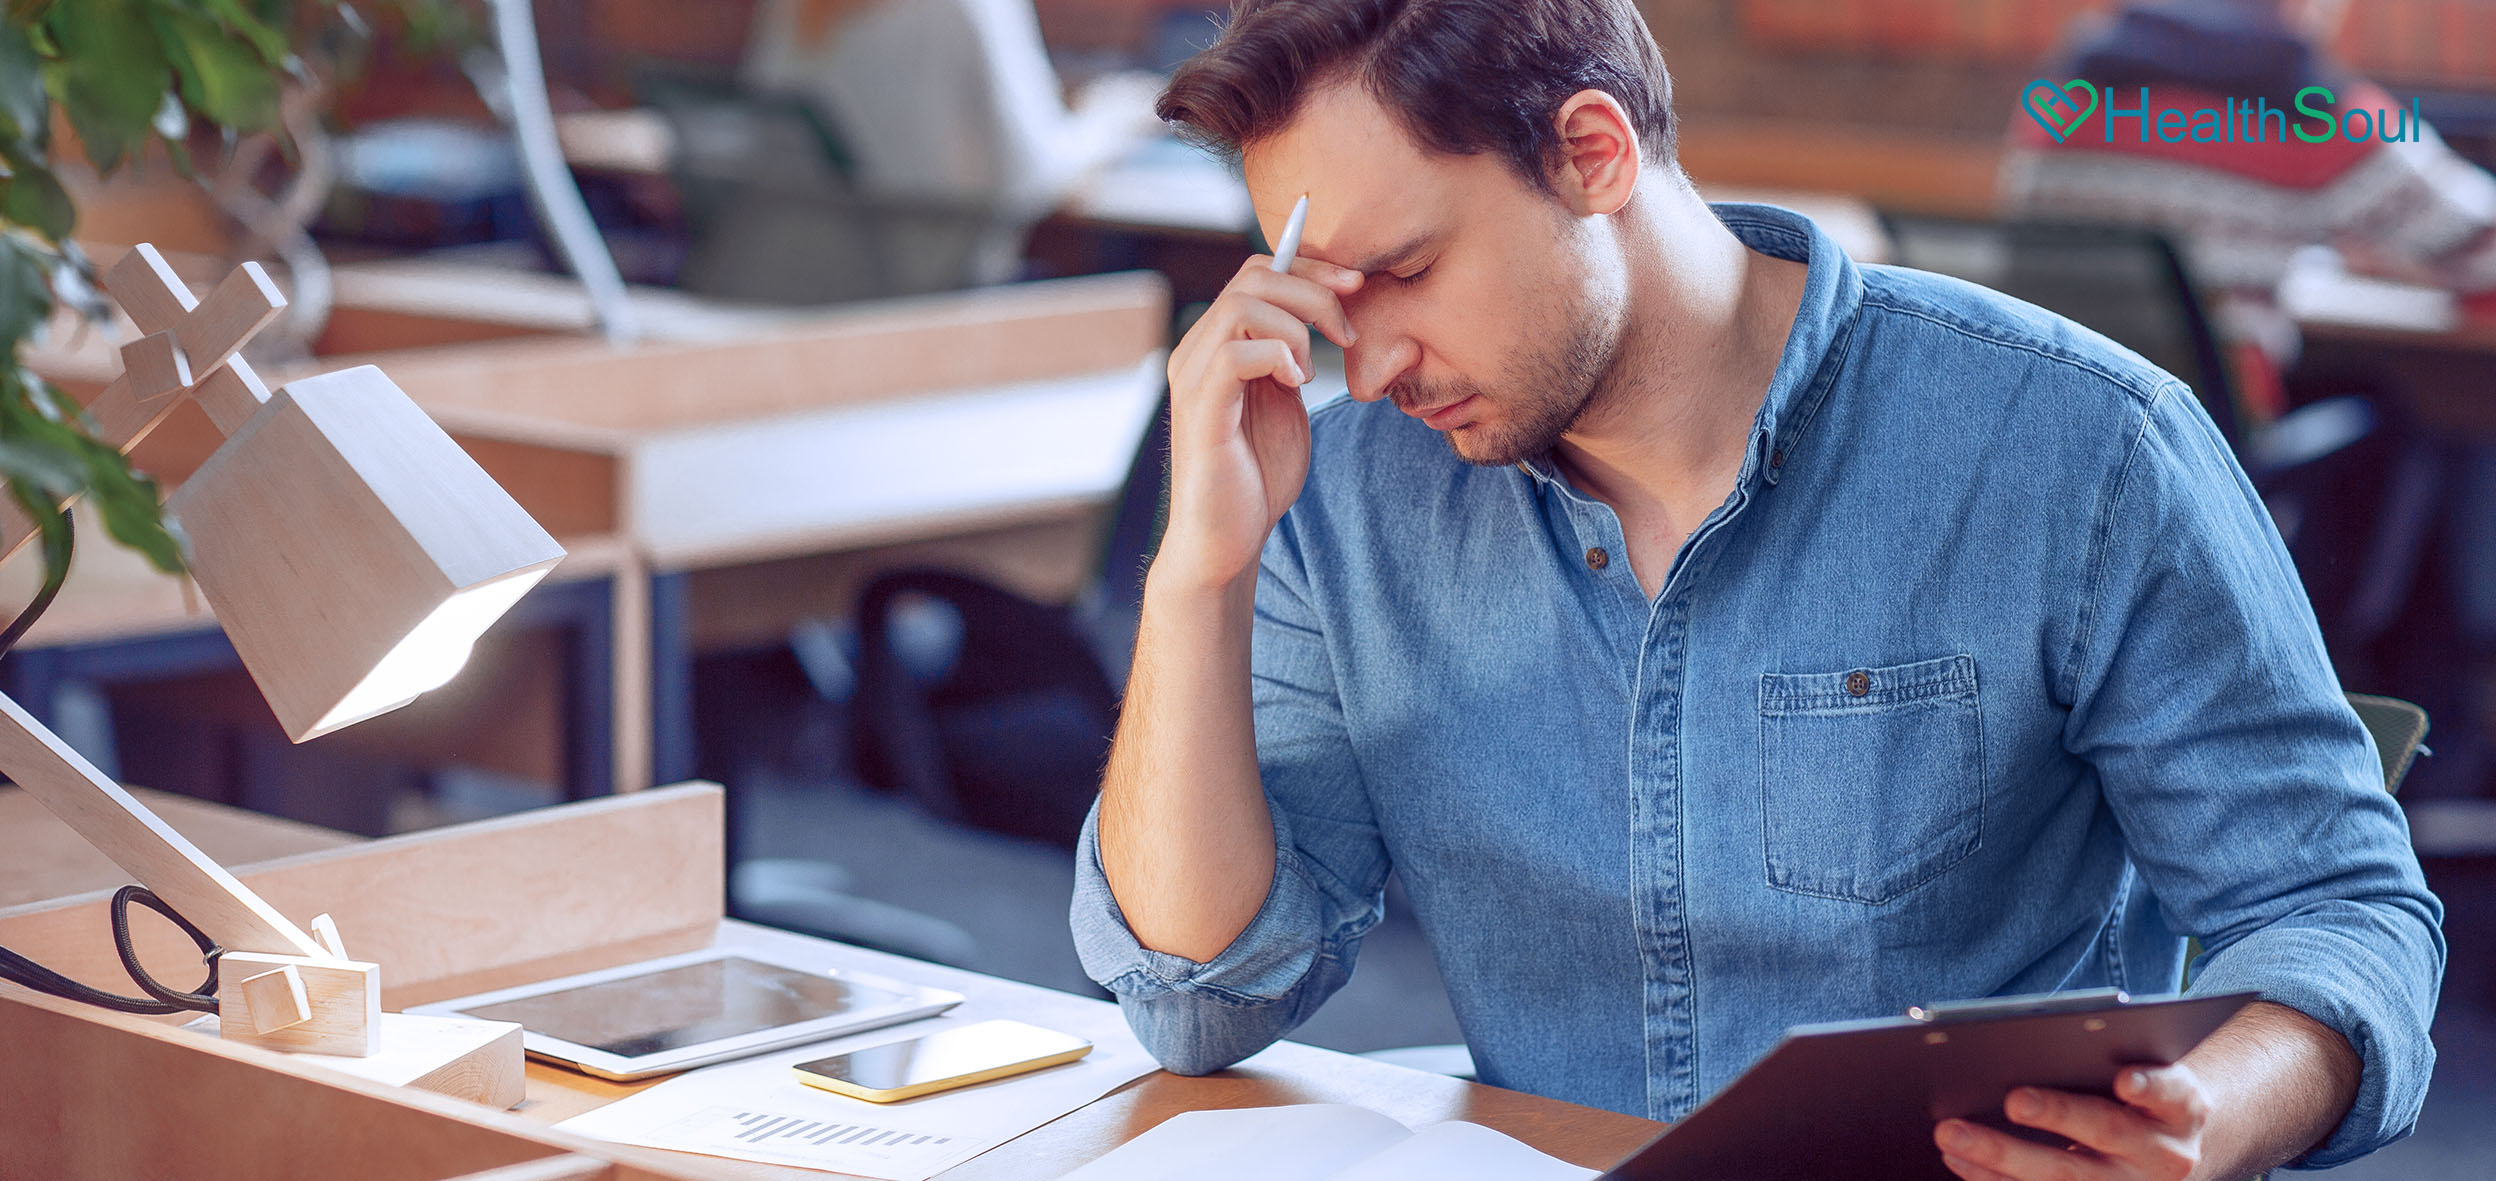 Feeling Tired All The Time? Perfect Tips For Those Who Stay a Long Time At Work | HealthSoul